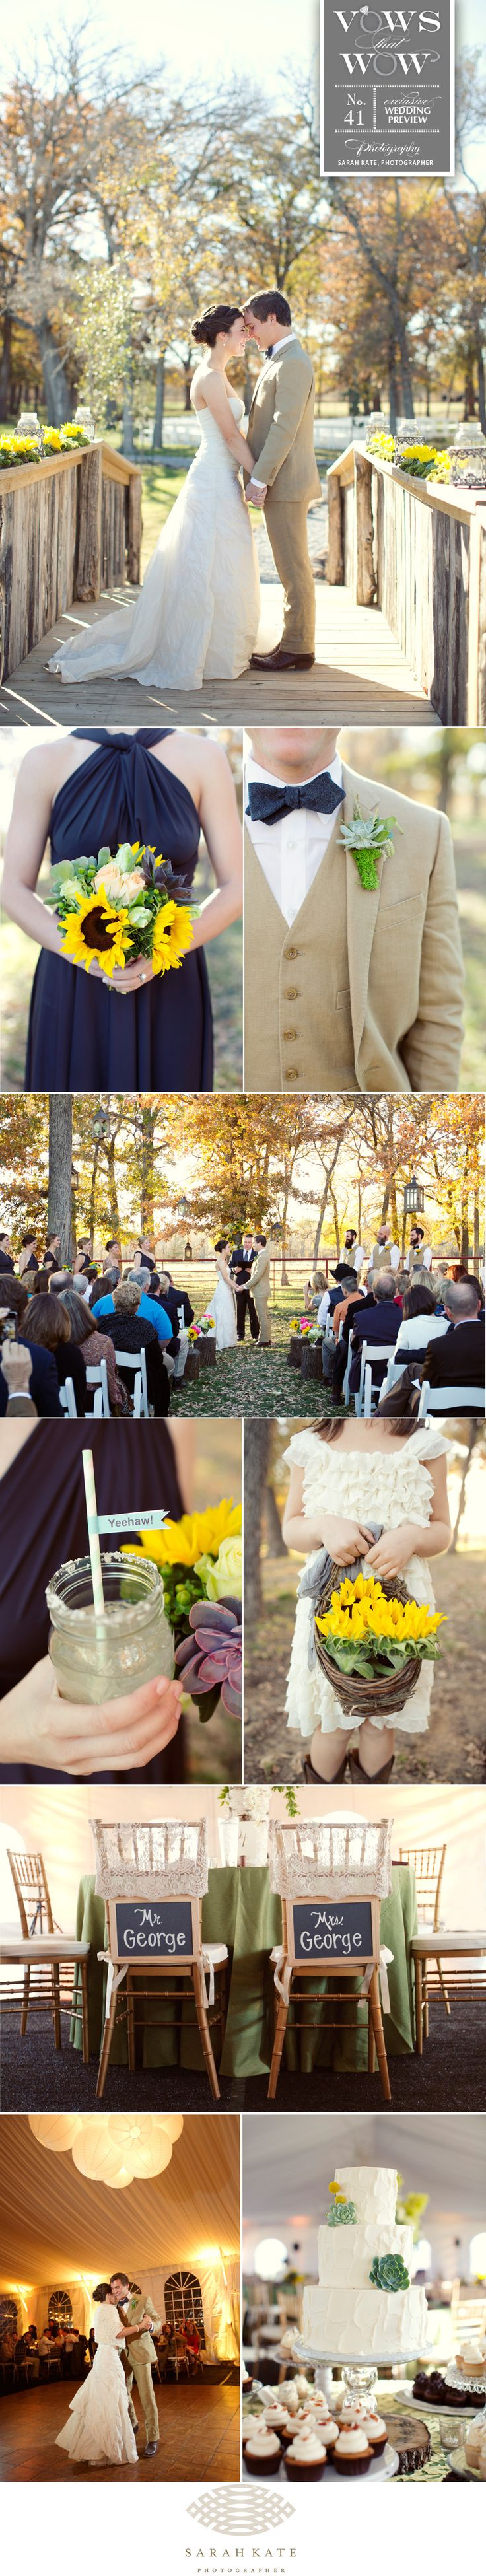 What's not to love about Katie and Chris's backyard ranch wedding! With the help of  of Jordan Payne Events, the couple's vision came to life with everything from the bright southern inspired florals from Jordan Payne Events and delicious food from Gil's Elegant Catering to the cake from Sugar Bee Sweets and paper elements from Southern Fried Paper. After a beautiful ceremony, guests moved to the reception under a large white tent lit by Beyond. Photos by Sarah Kate, Photographer